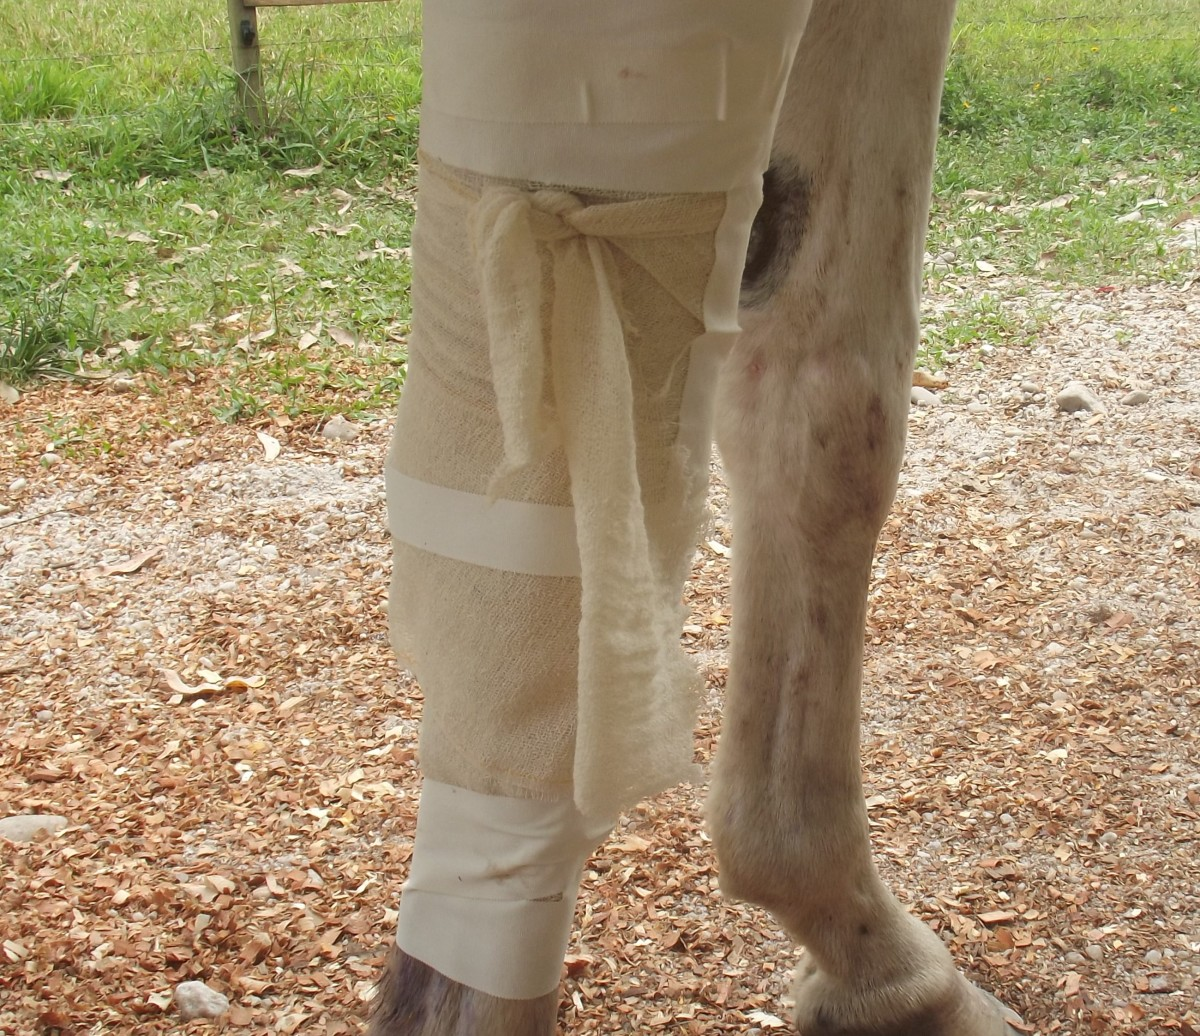 An inexpensive bandage using roll gauze and medical tape.